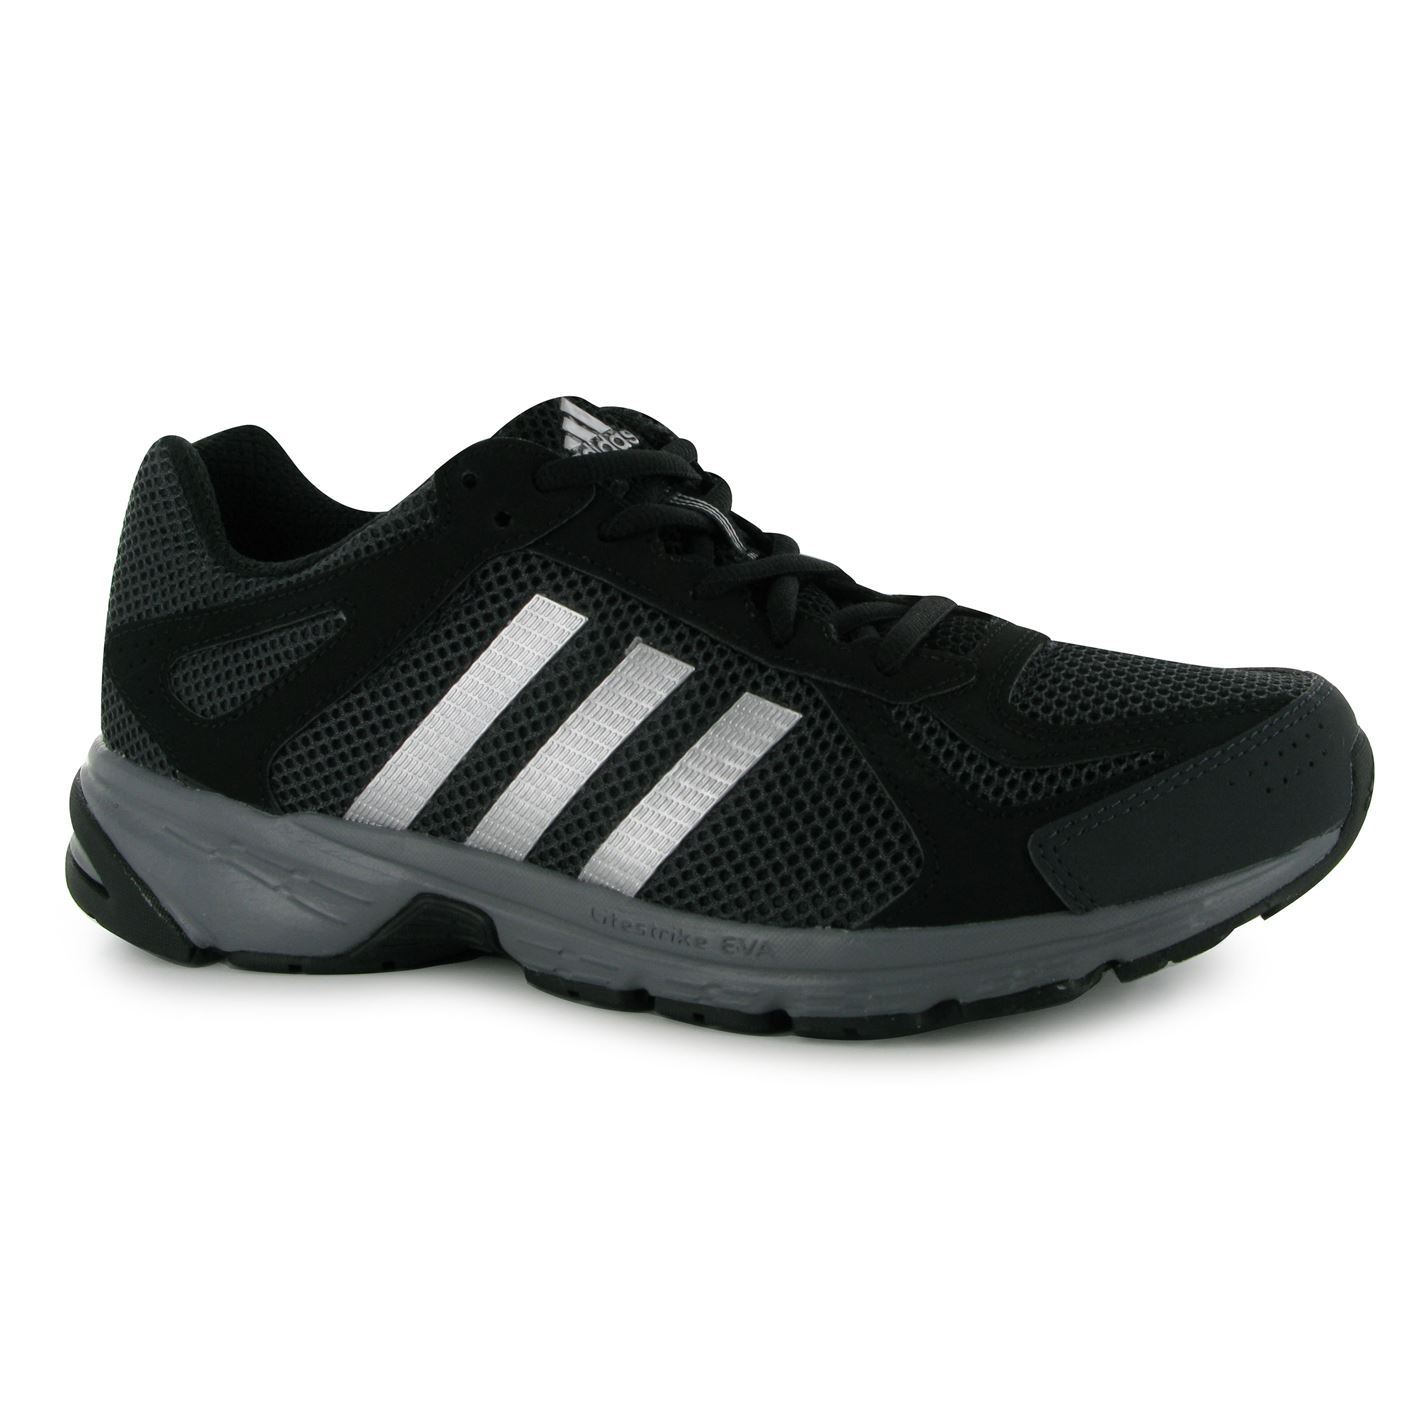 adidas 55 shoes. adidas duramo 55 running shoes mens carbon/black fitness trainers sneakers l